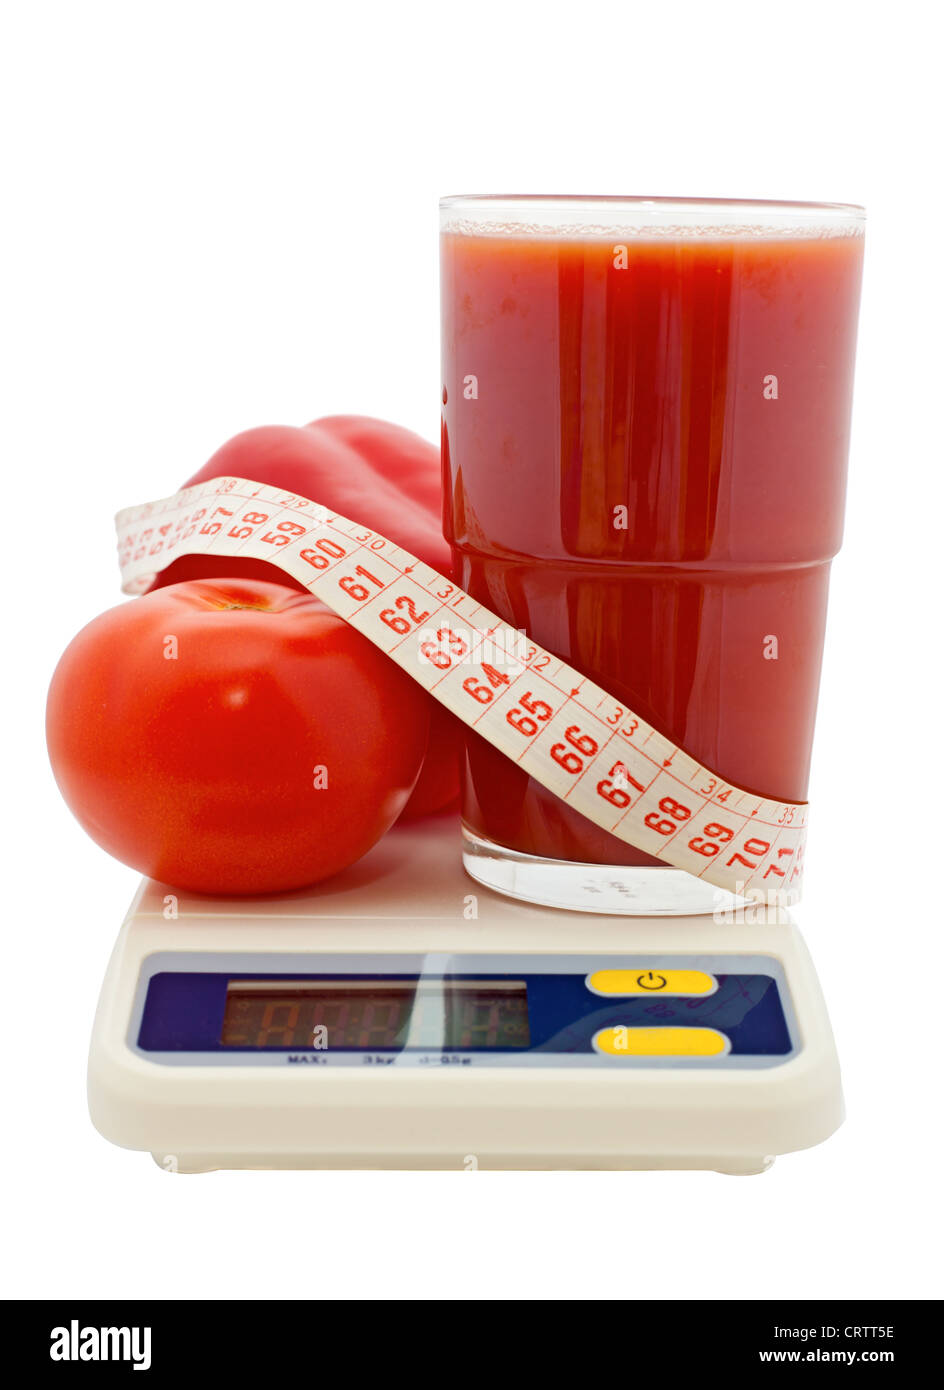 tomato juice, vegetables, measuring tape on electronic scale - Stock Image